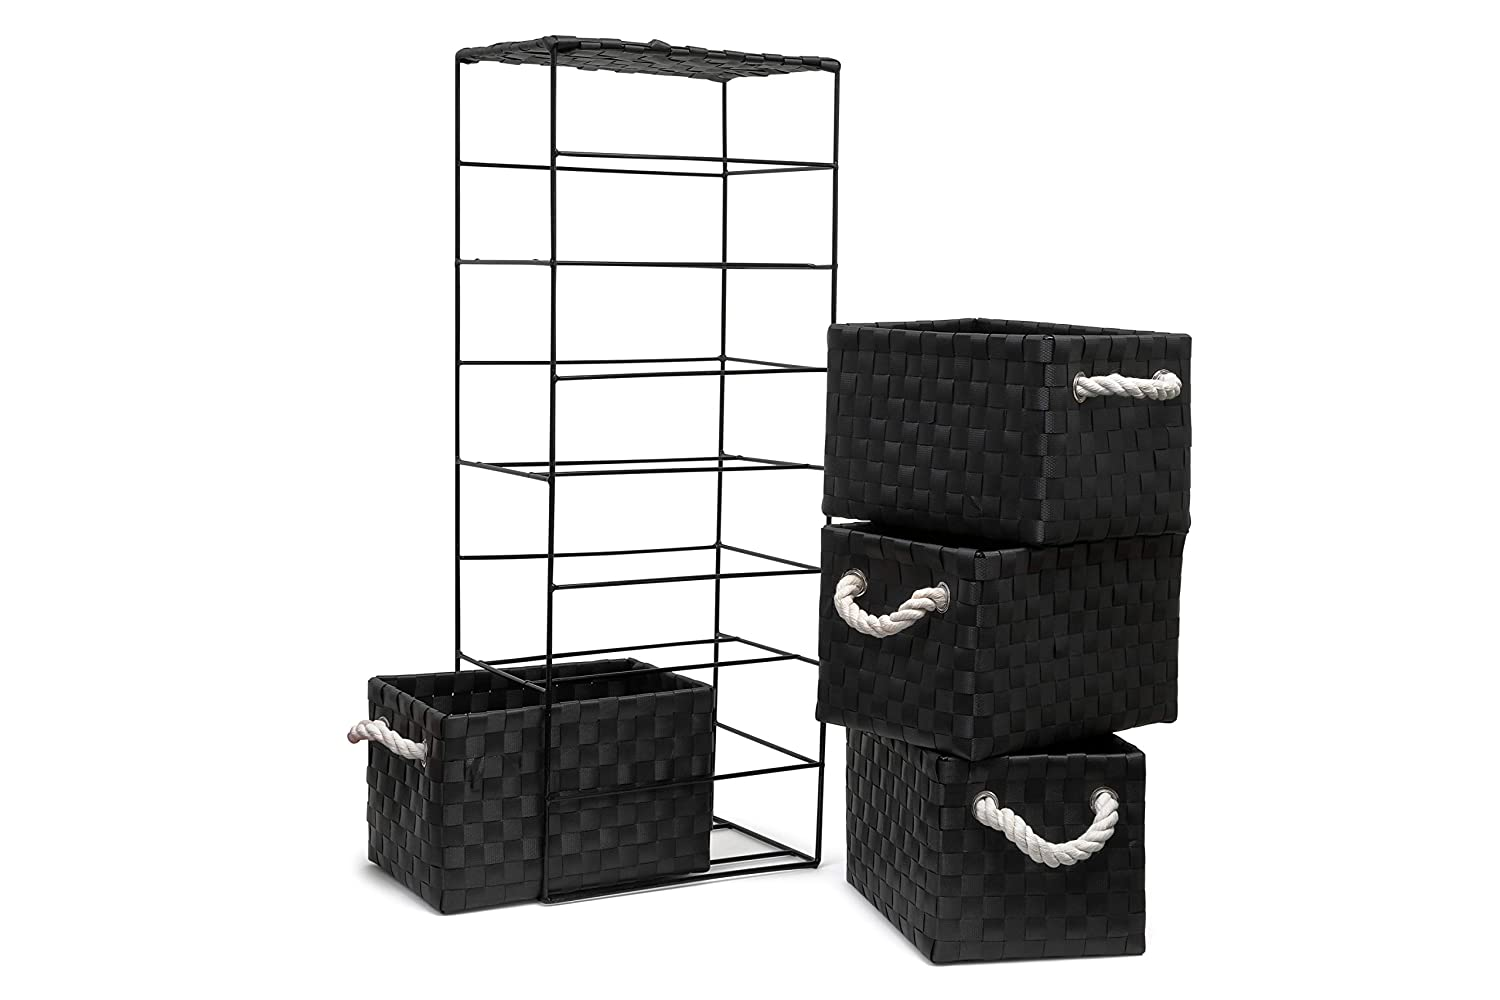 2-Drawer - 18x25x33cm 2-Drawer - 18x25x33cm Arpan Black 2-Drawer Storage Unit Ideal For Home//Office//bedrooms